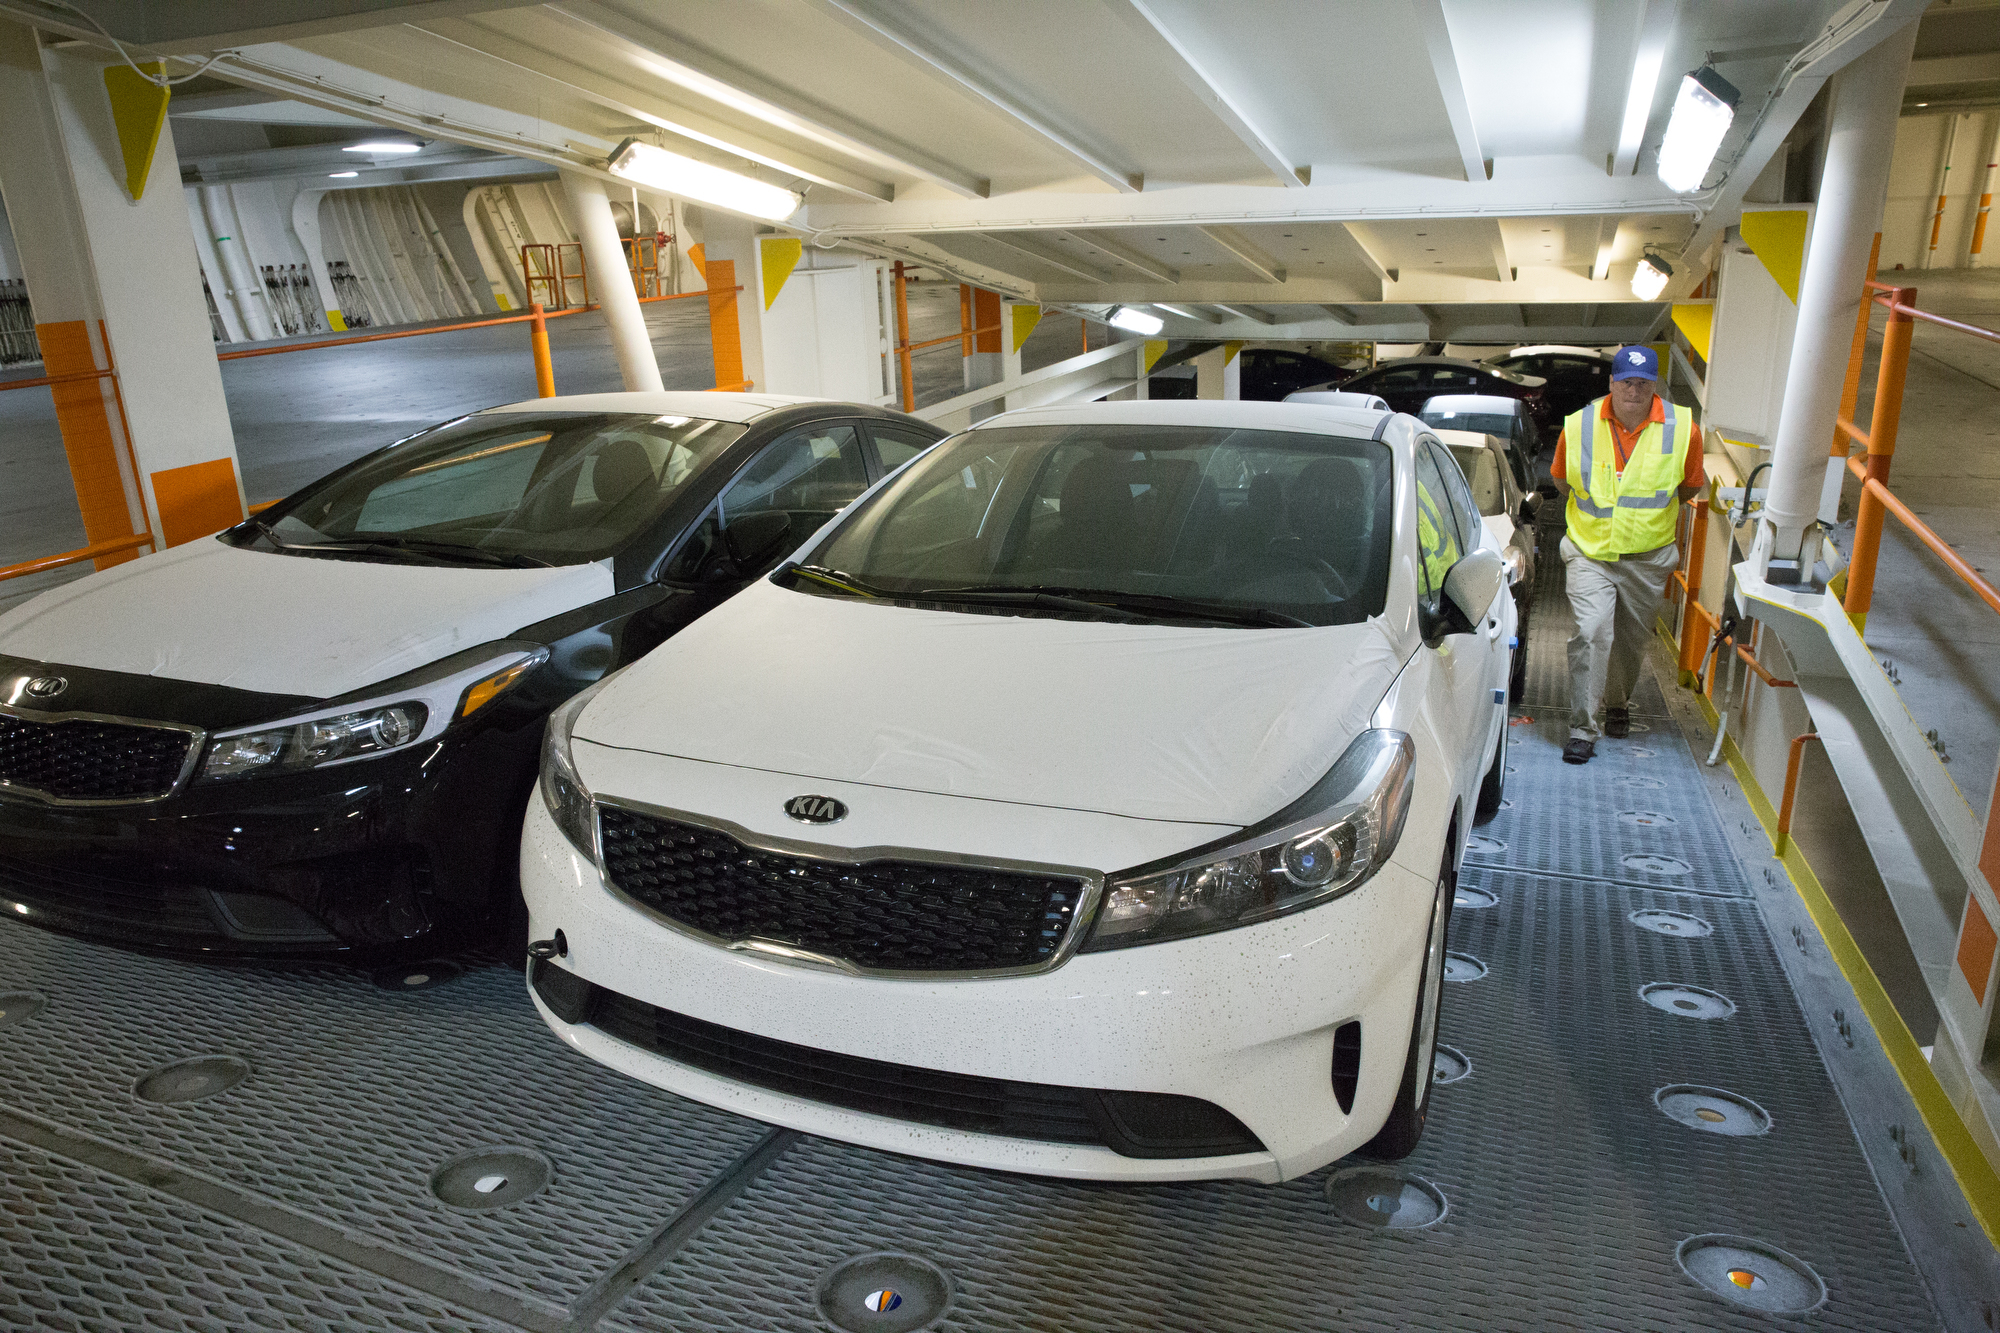 Automobiles inside the ship waiting to be unloaded at Pier 122 in Philadelphia, Friday. (JESSICA GRIFFIN / Staff Photographer)